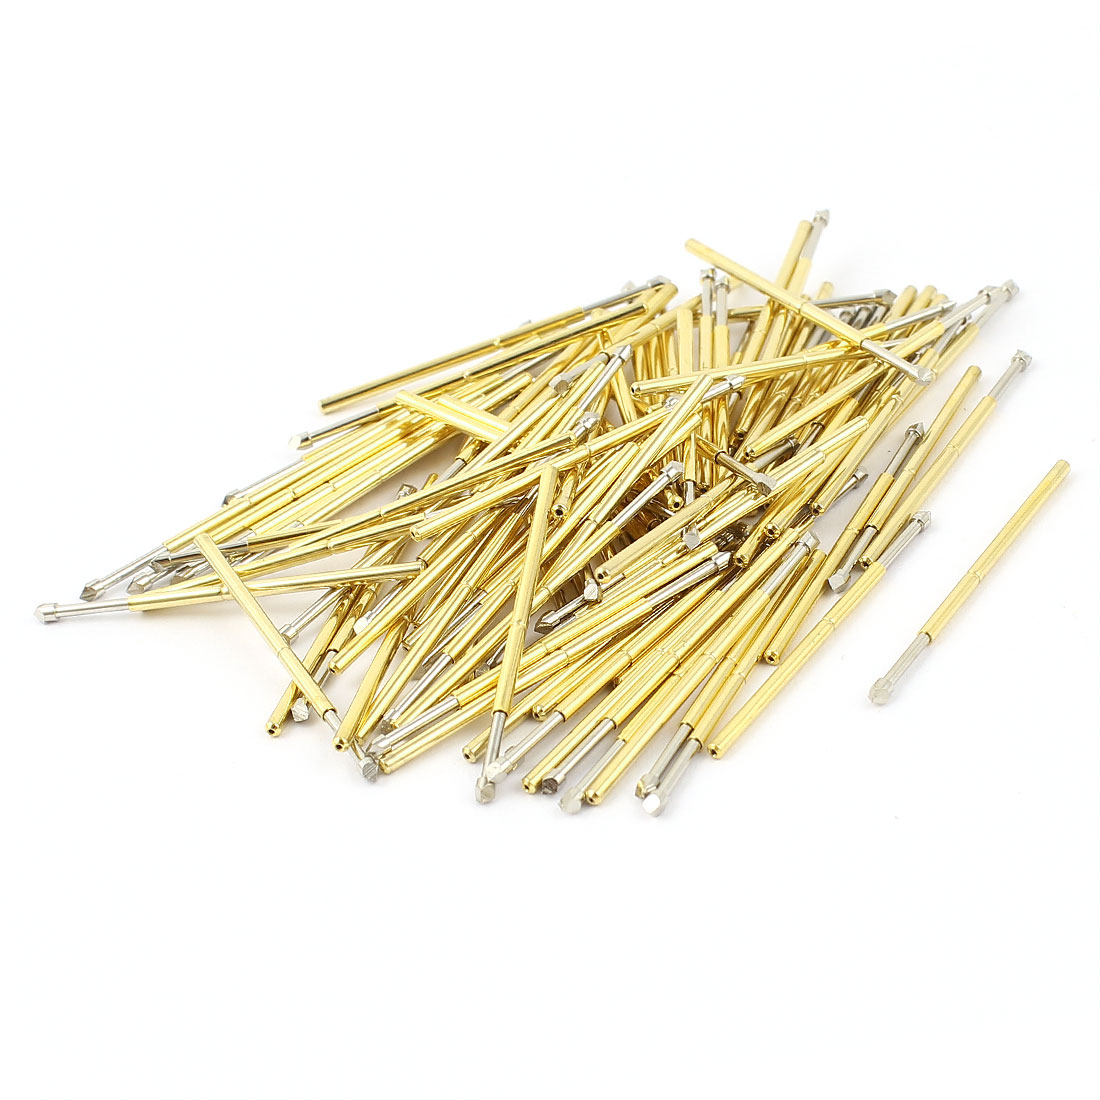 100 Pcs P100-T2 1.5mm Chisel Tip Spring Testing Probes Pin 33.3mm Length